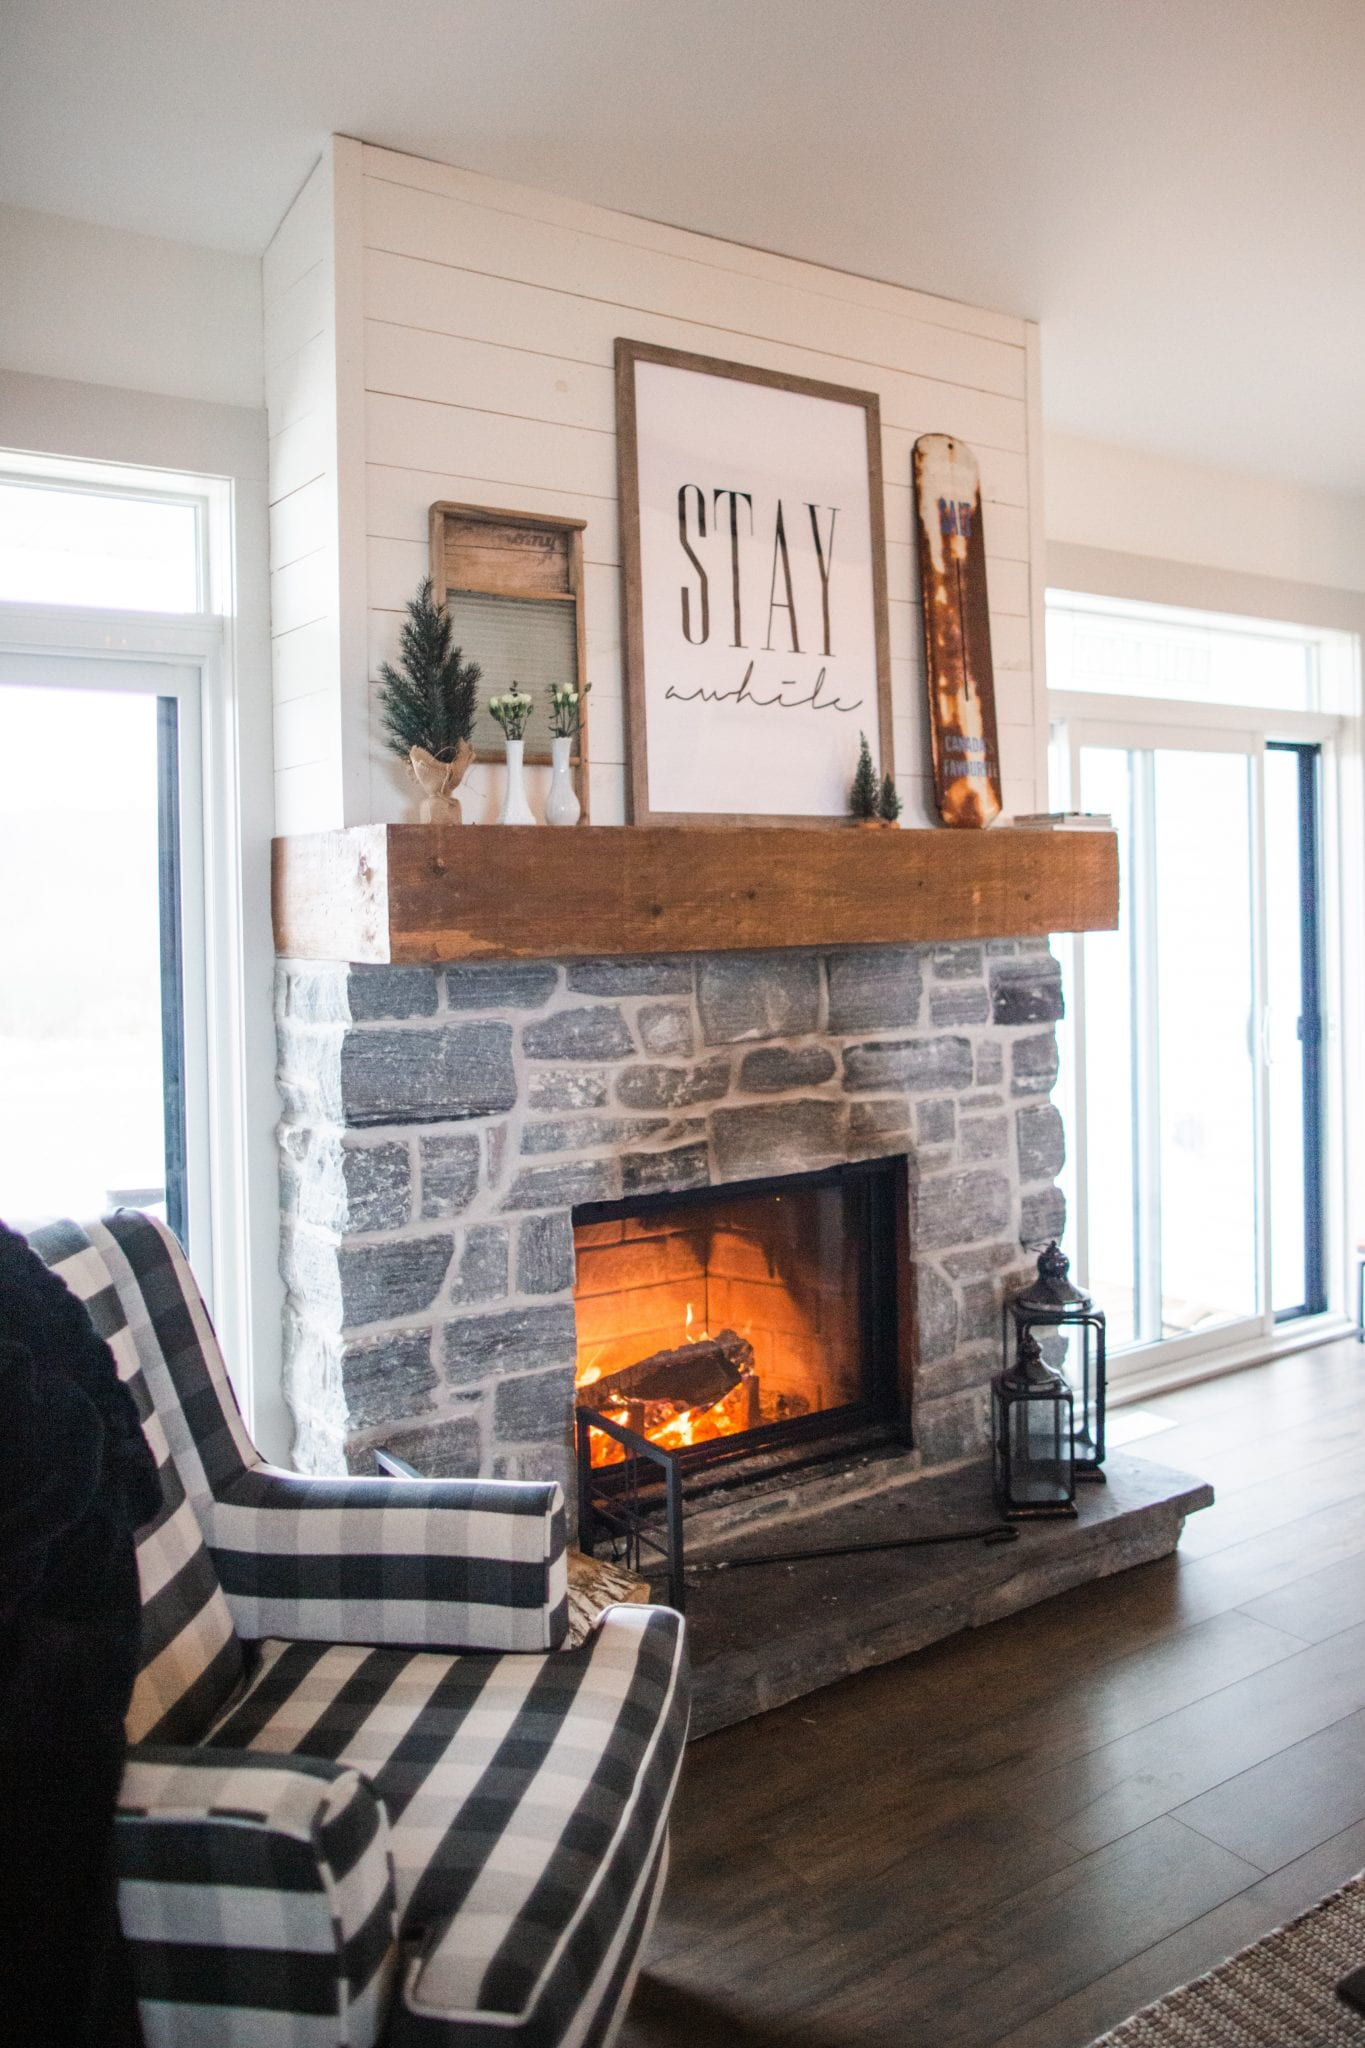 two black sconce lamps near fireplace